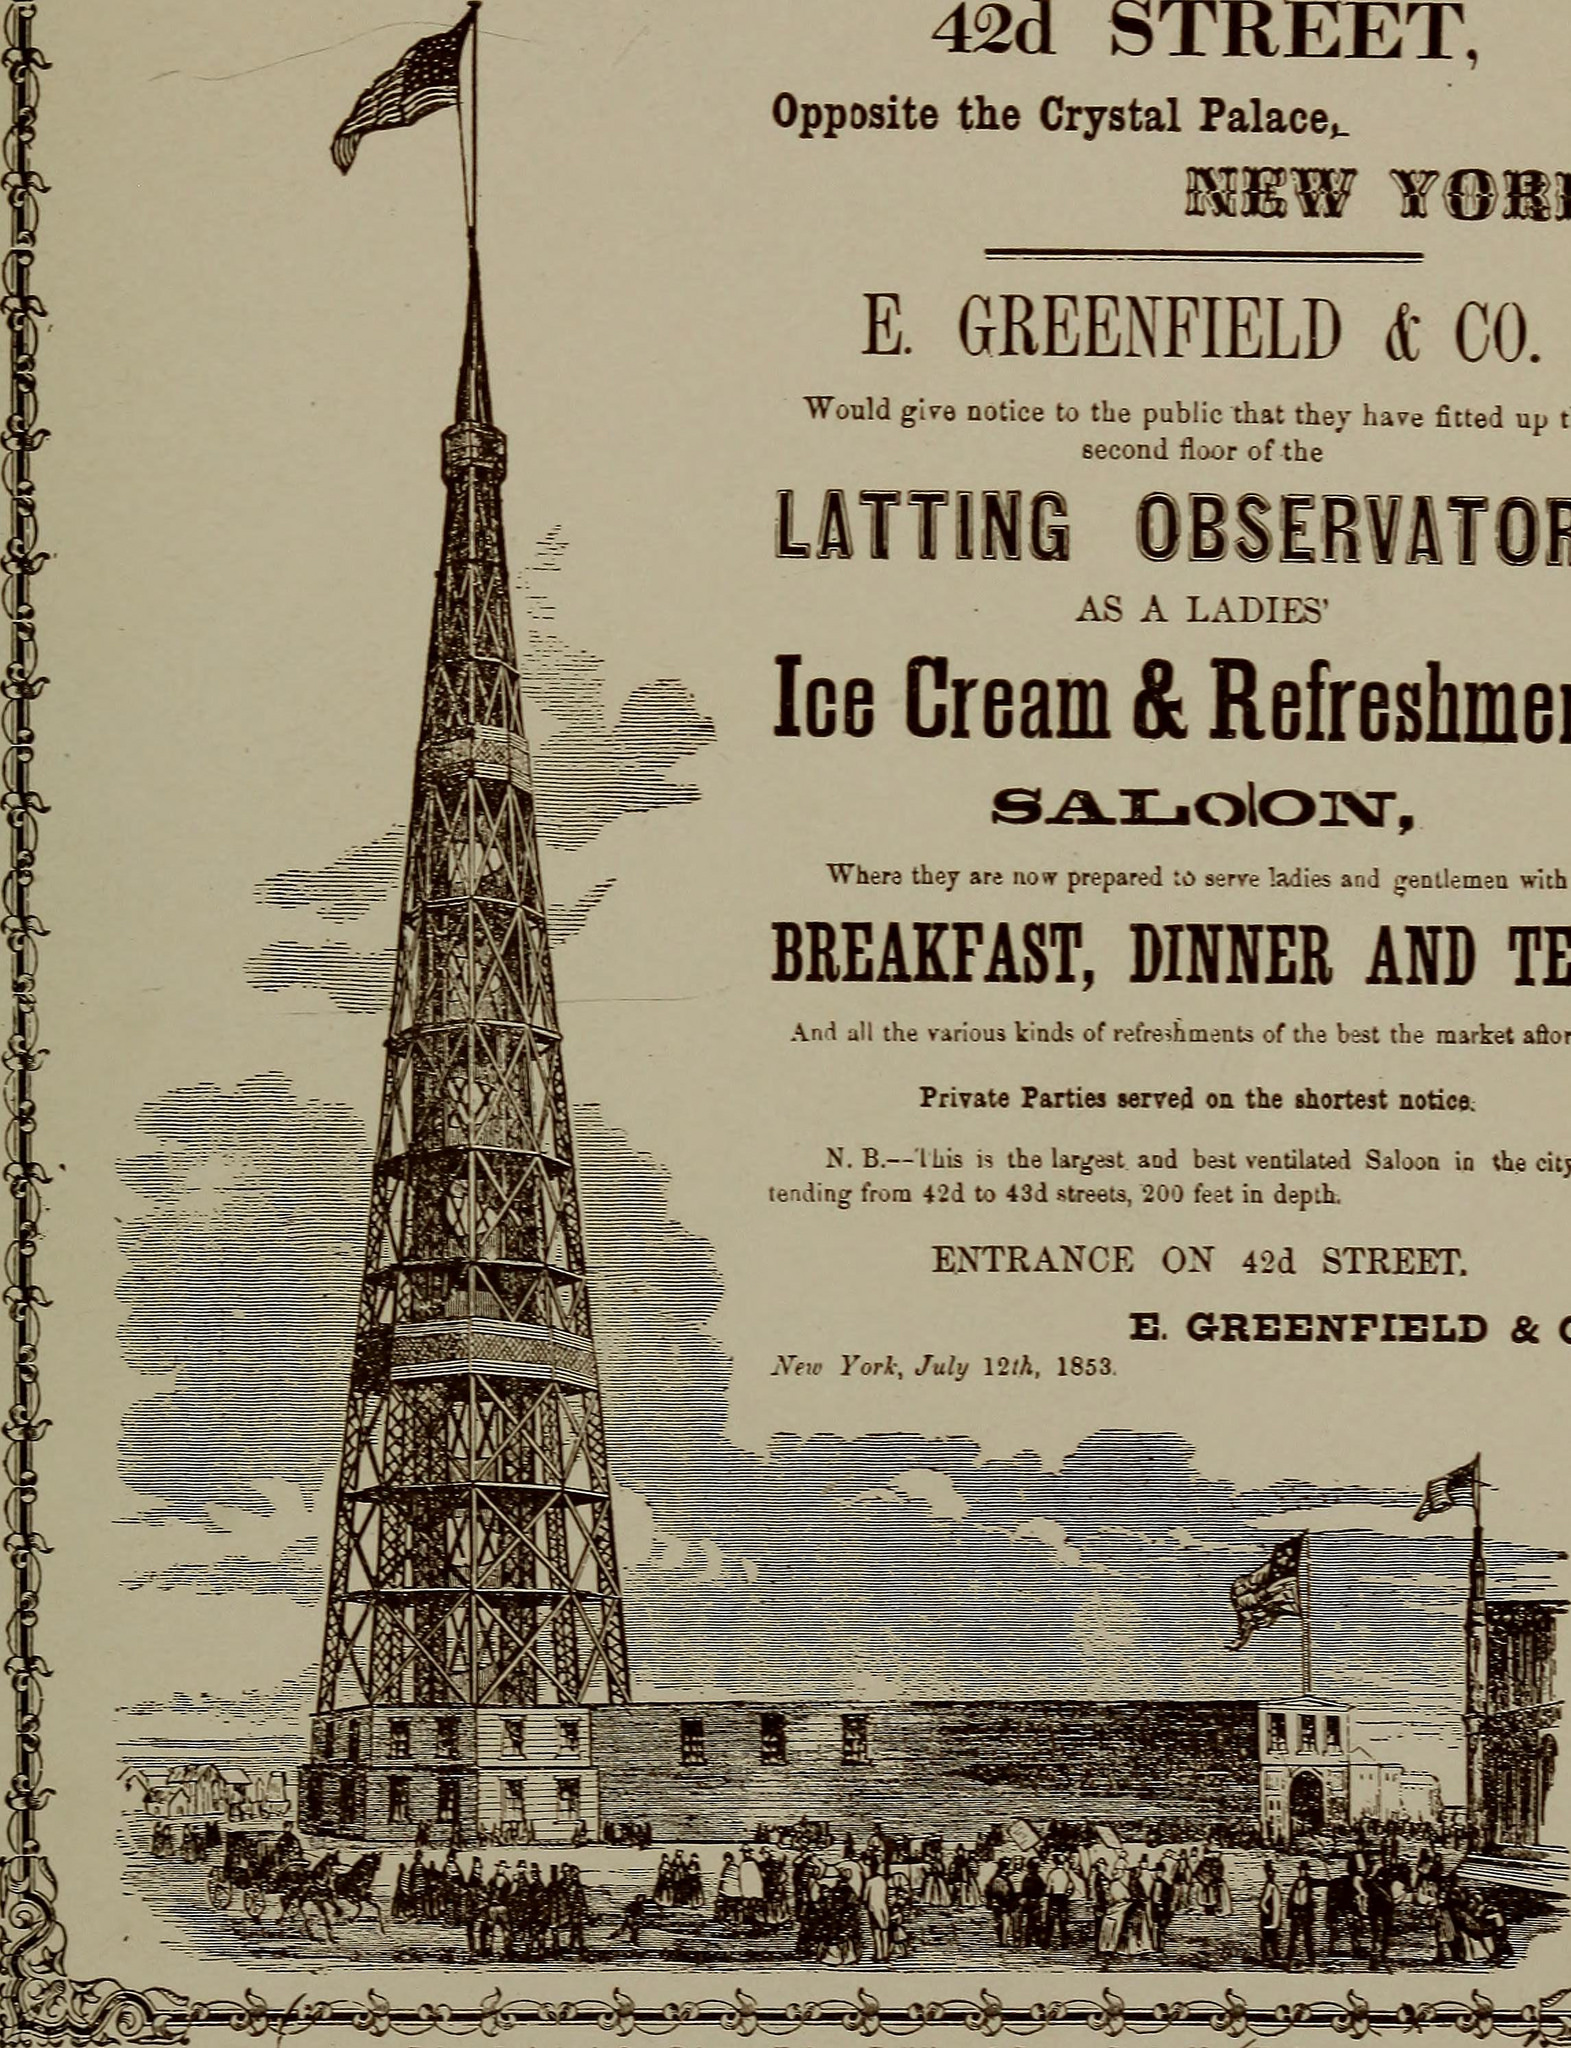 A reprinted advertisement from Valentine's Manual of old New York, outlining some of the charms of Latting Observatory